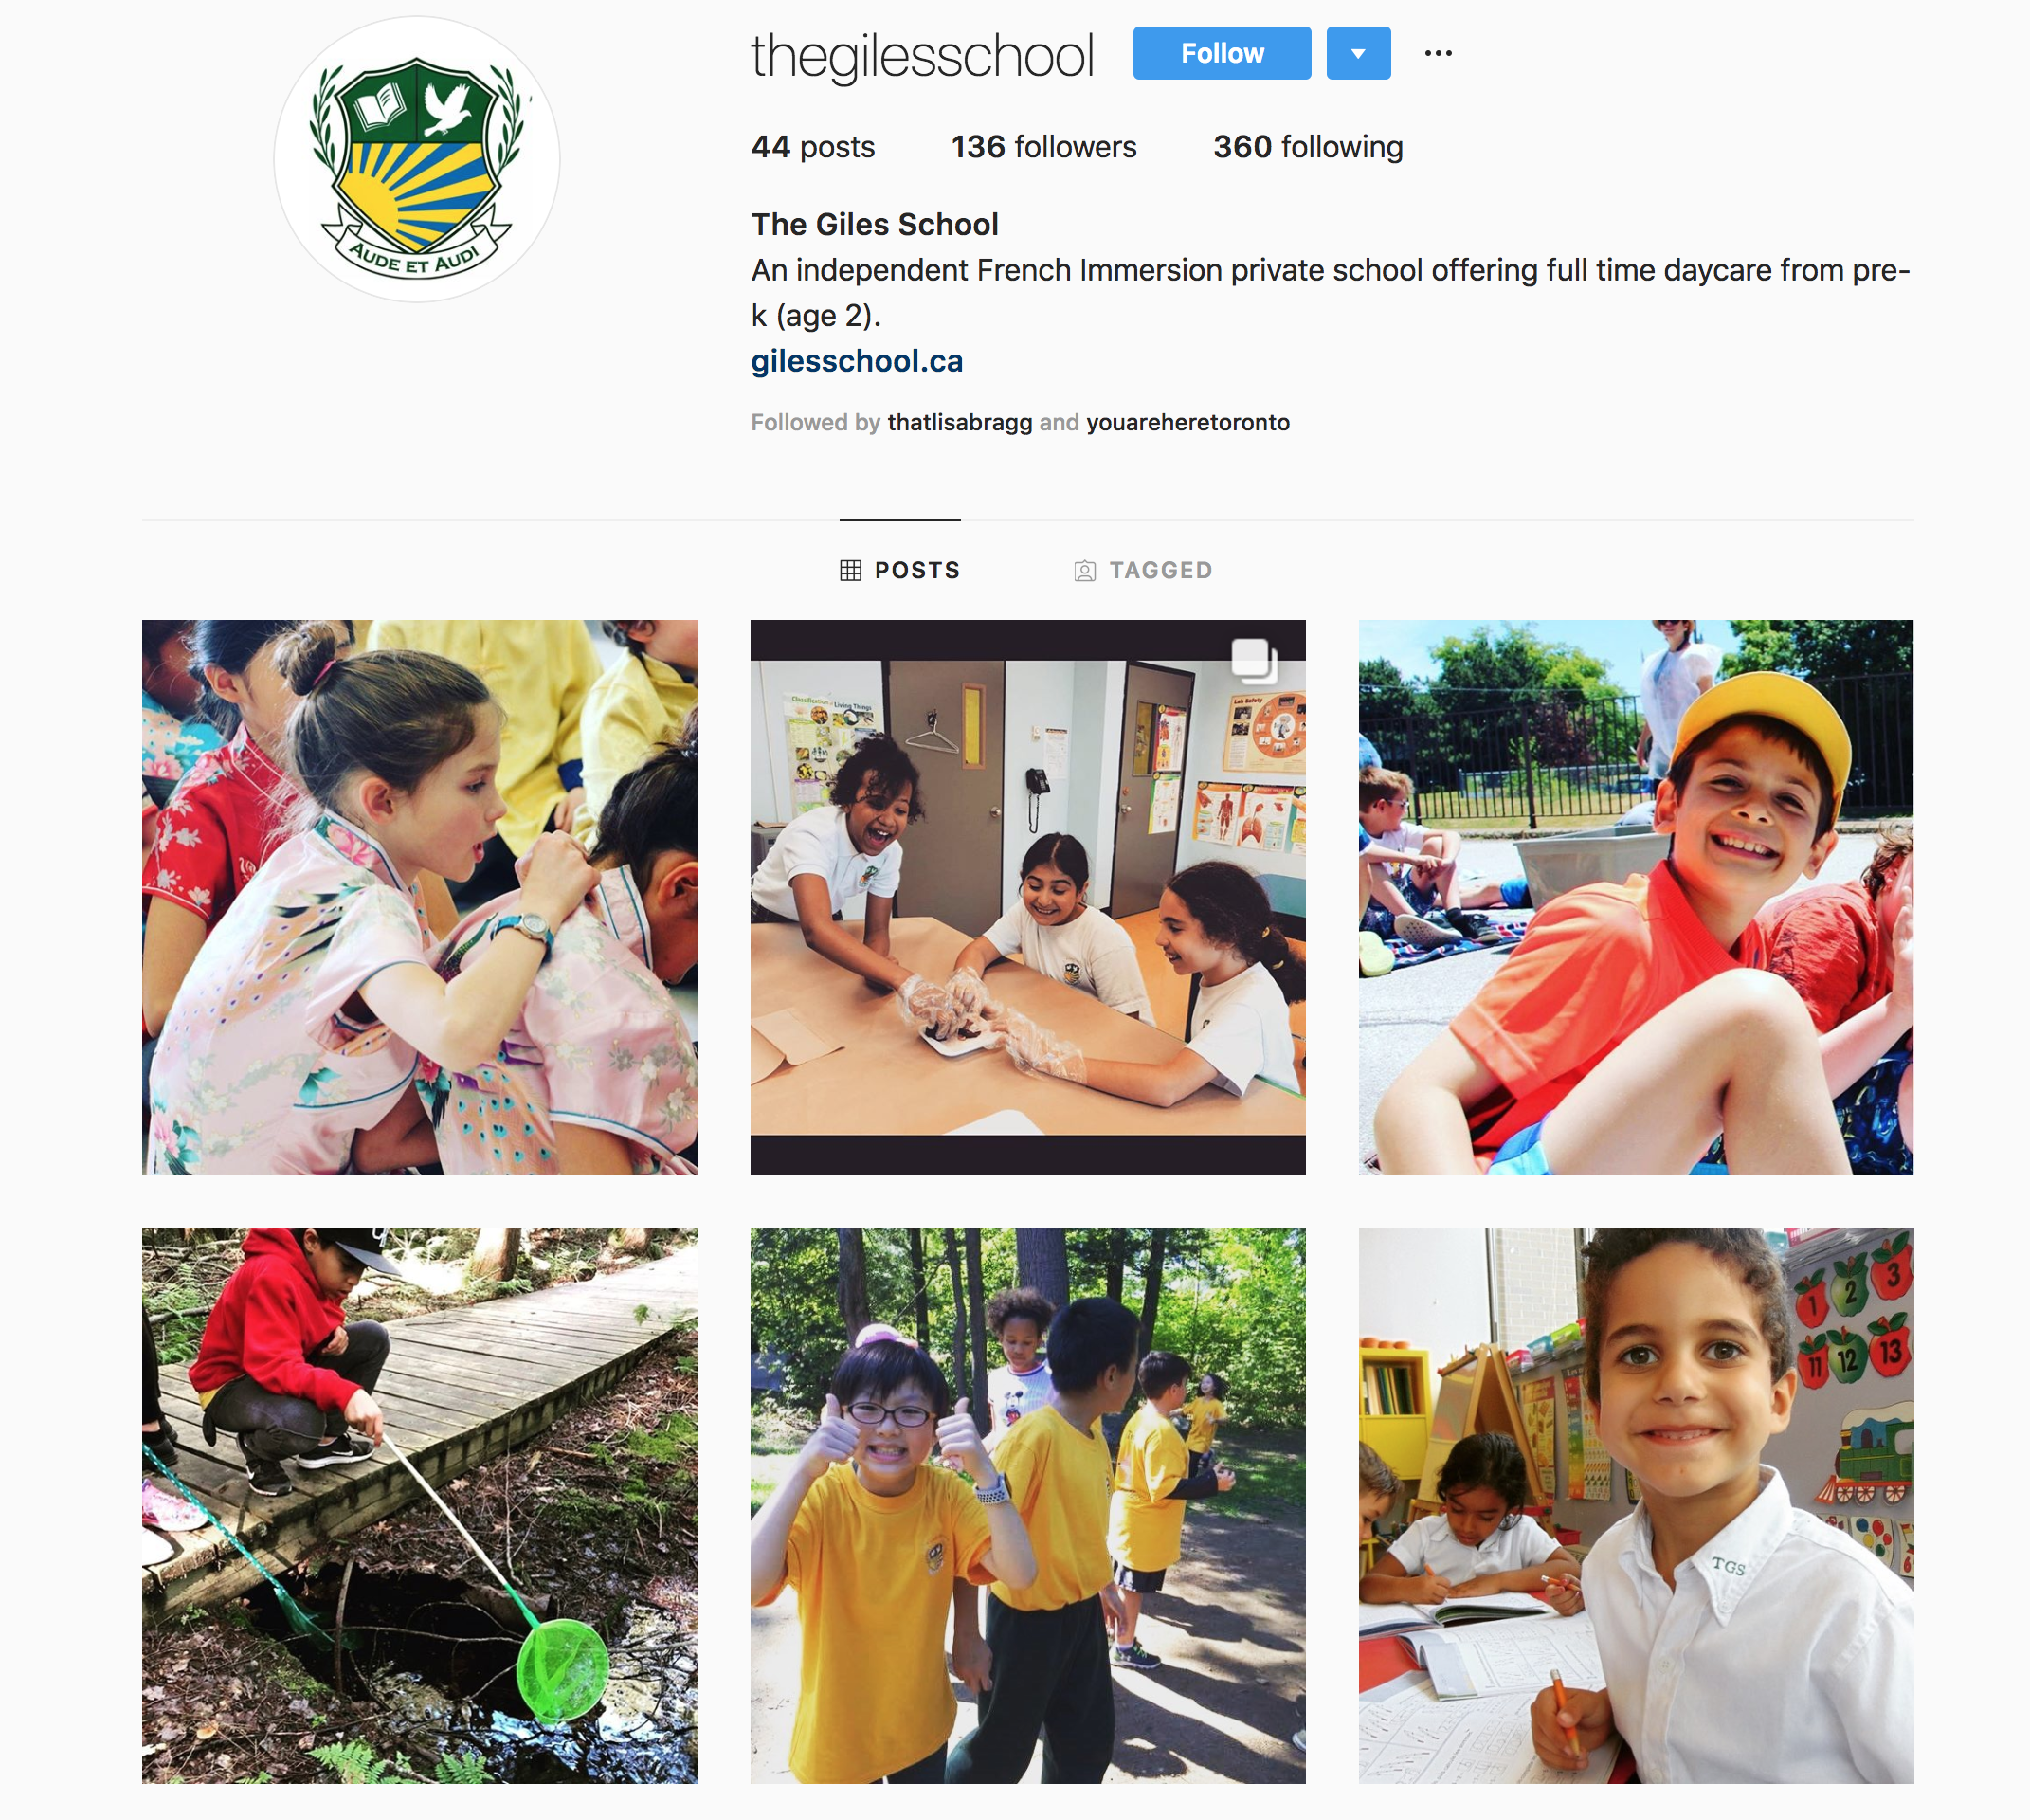 The Giles School Instagram feed, populated by posts from the MediaFace social media team.